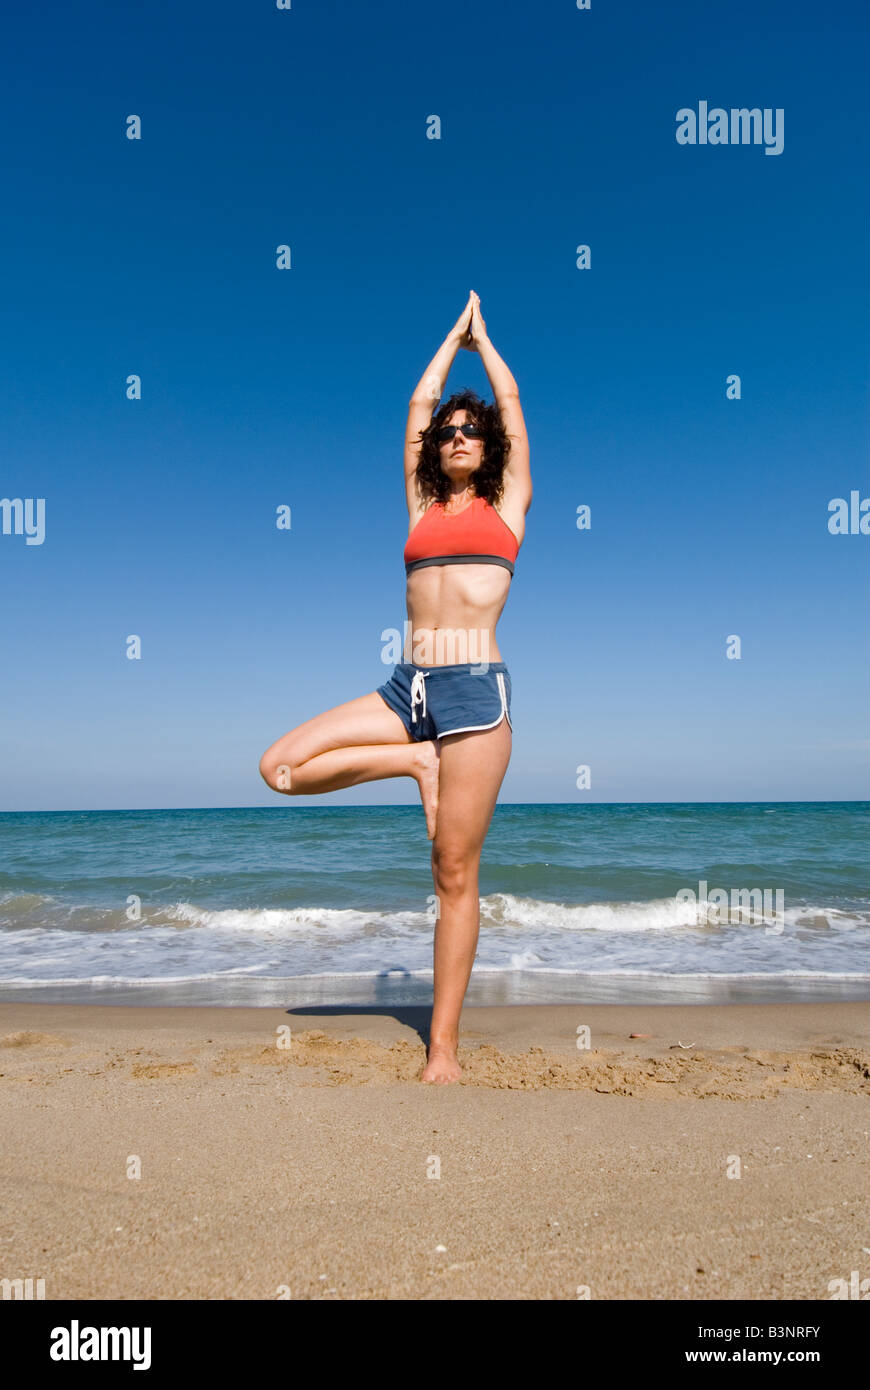 Model Released fit young woman doing yoga stretching stretching exercises on a sandy beach Stock Photo